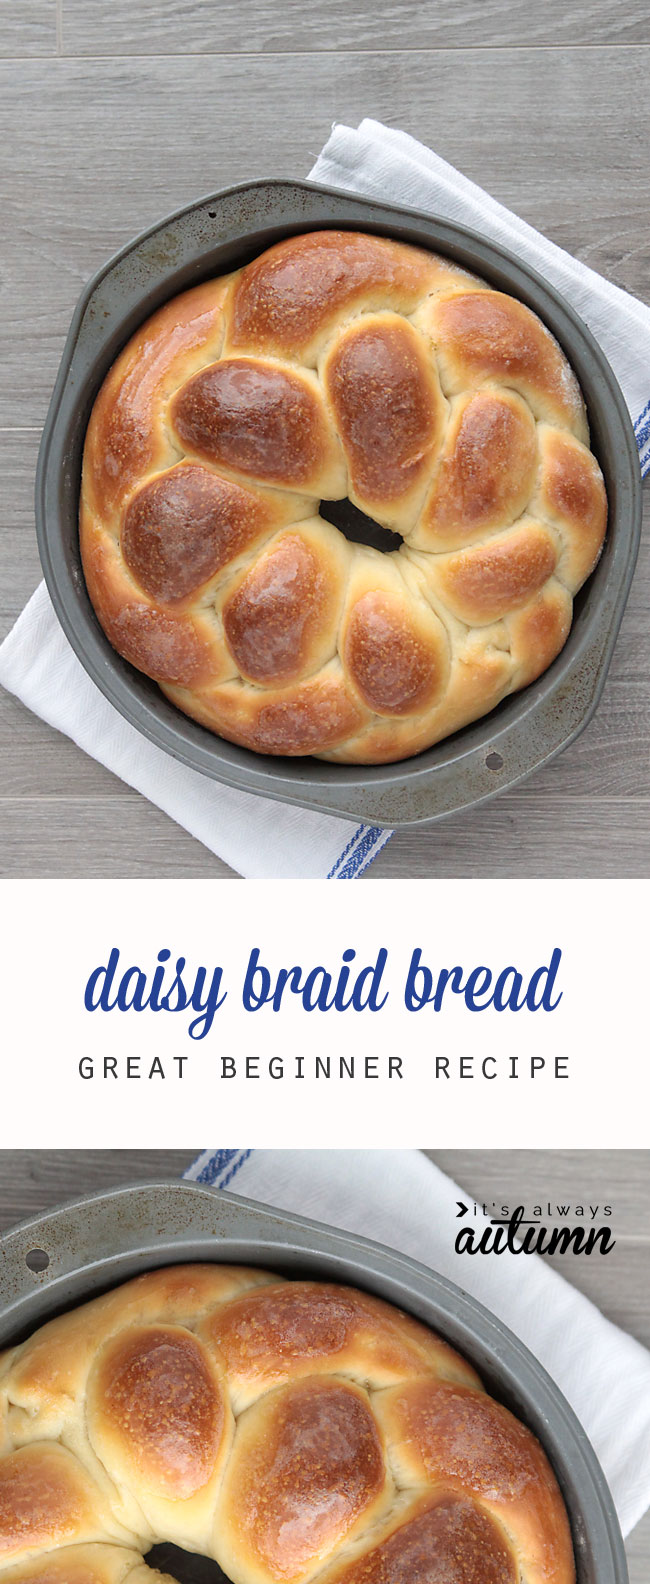 This gorgeous braided bread recipe is easy to make and perfect for beginners. It rises in the fridge so you can make it ahead and bake whenever you want. Great recipe for gifting!